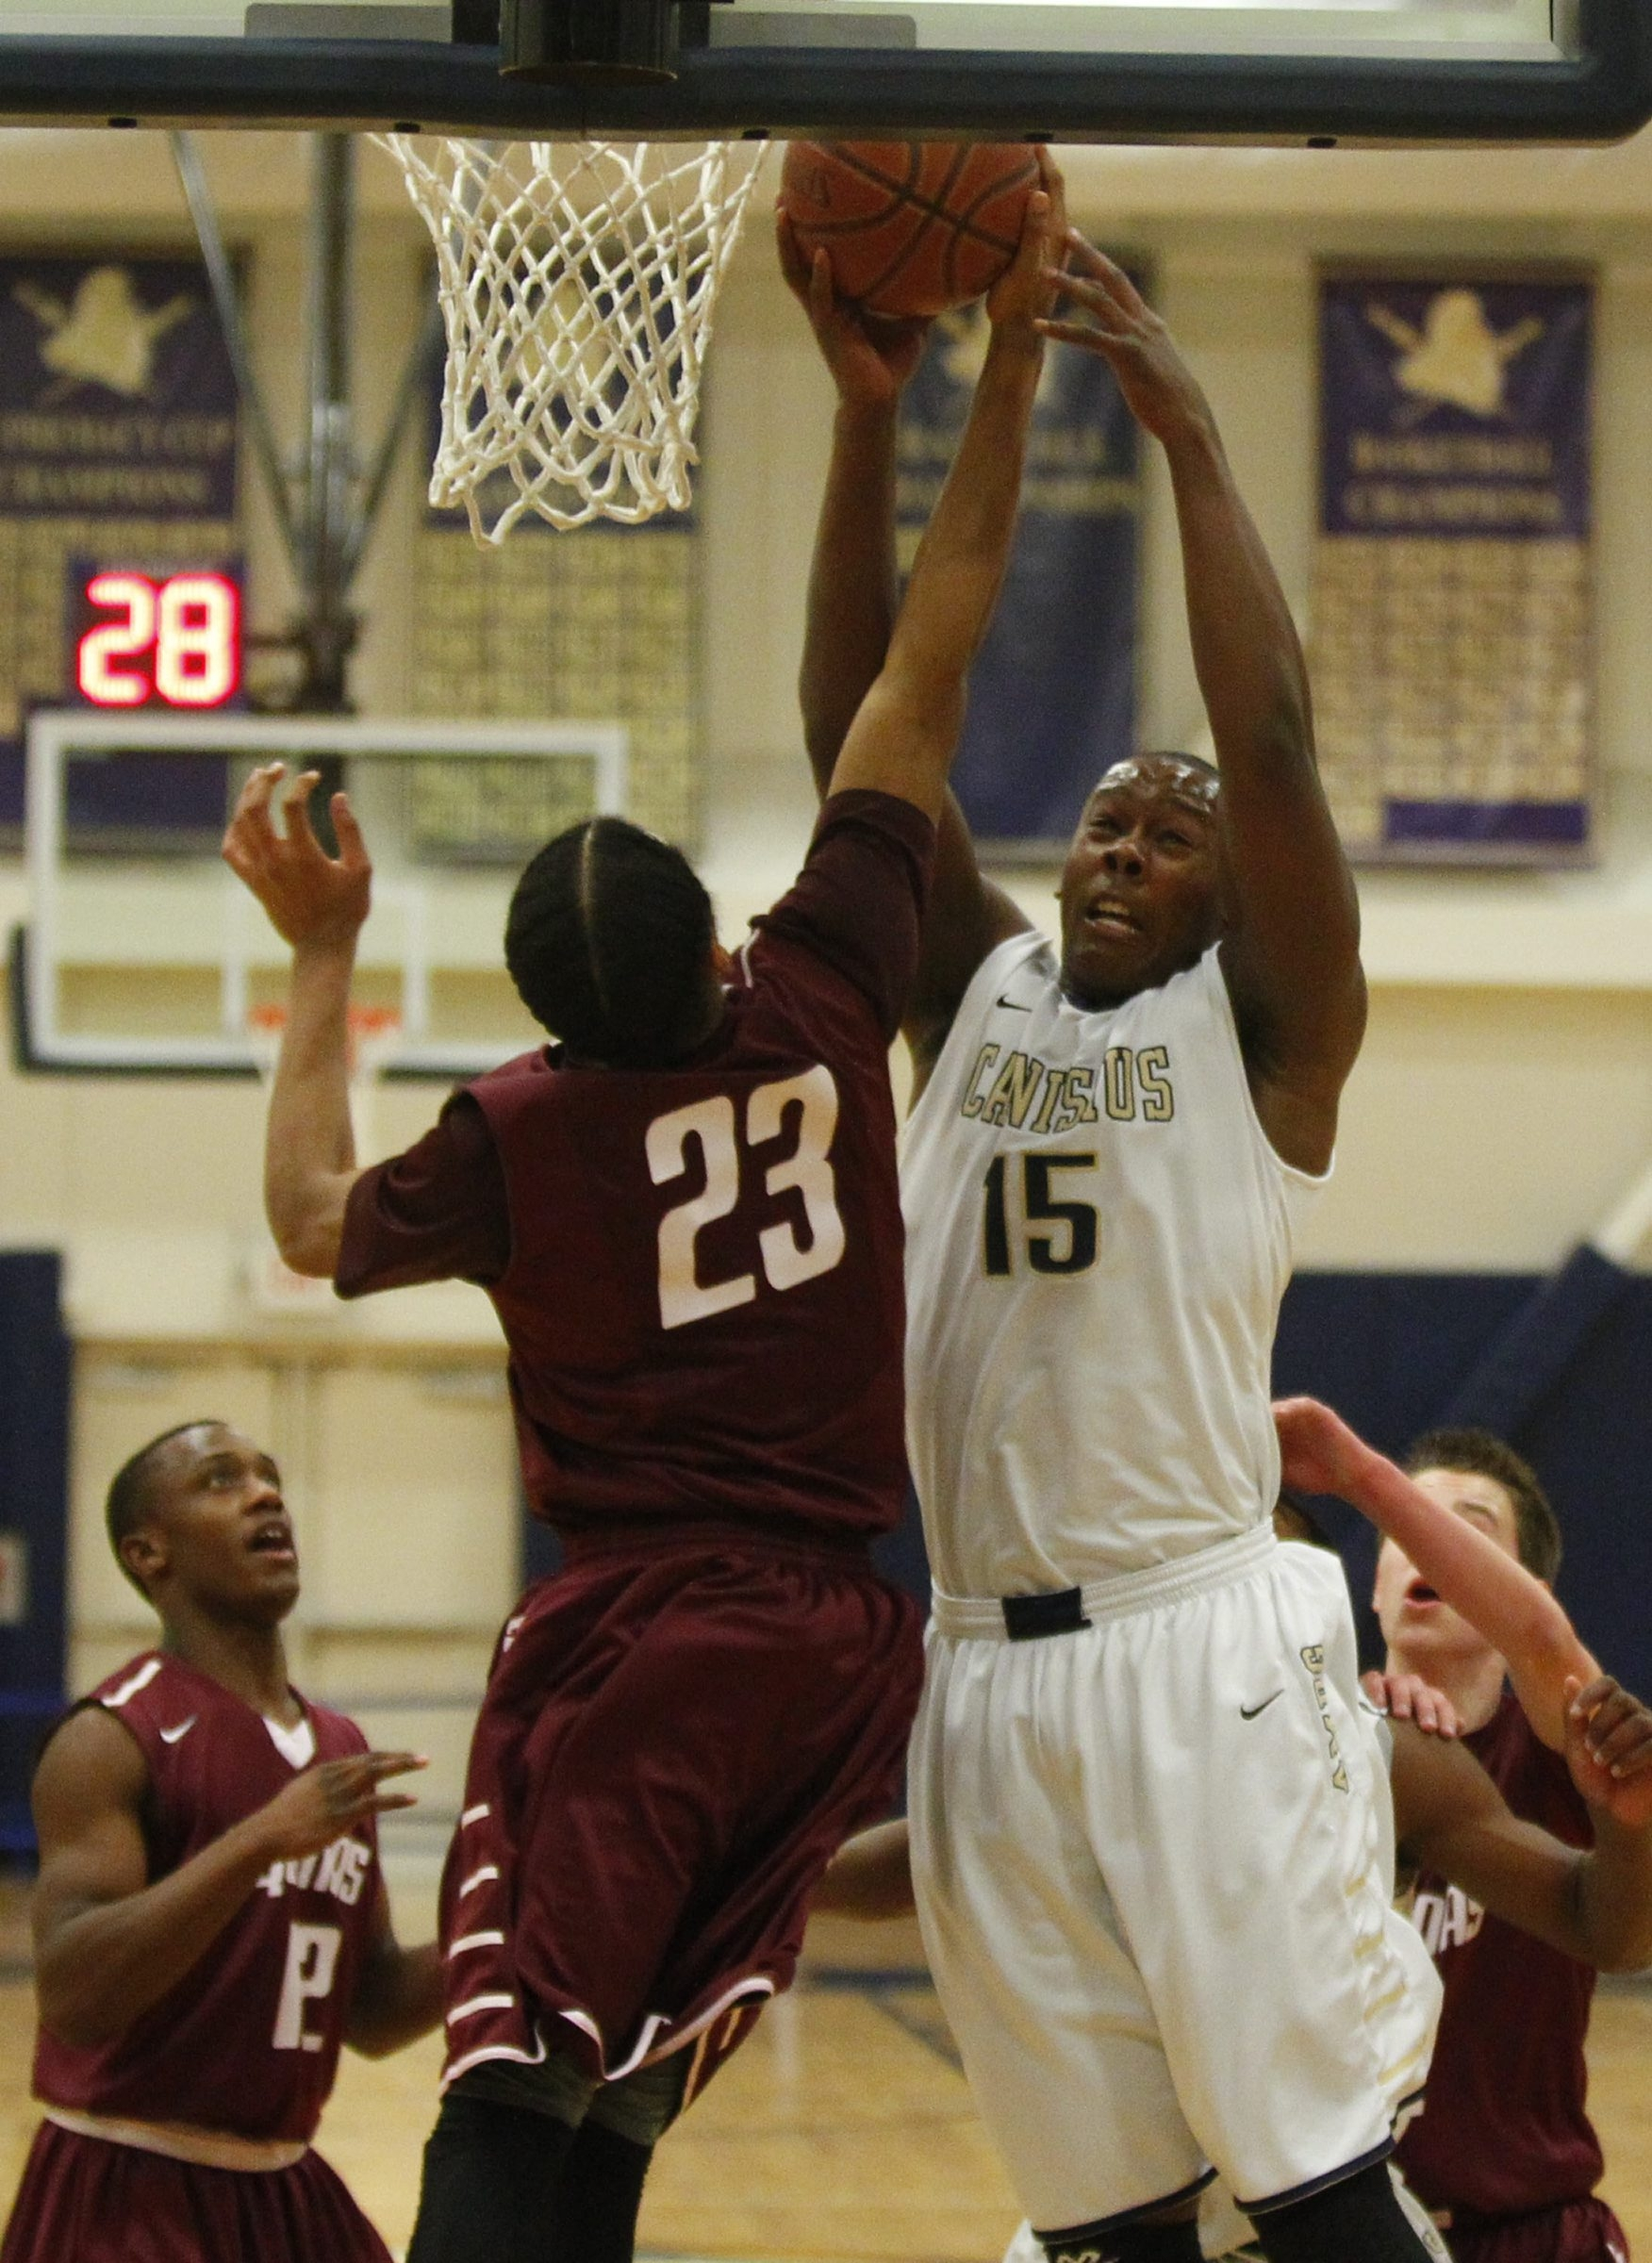 TJ Wheatley (15) and D.J. Roberts of Aquinas battle for a rebound during the Crusaders' victory.